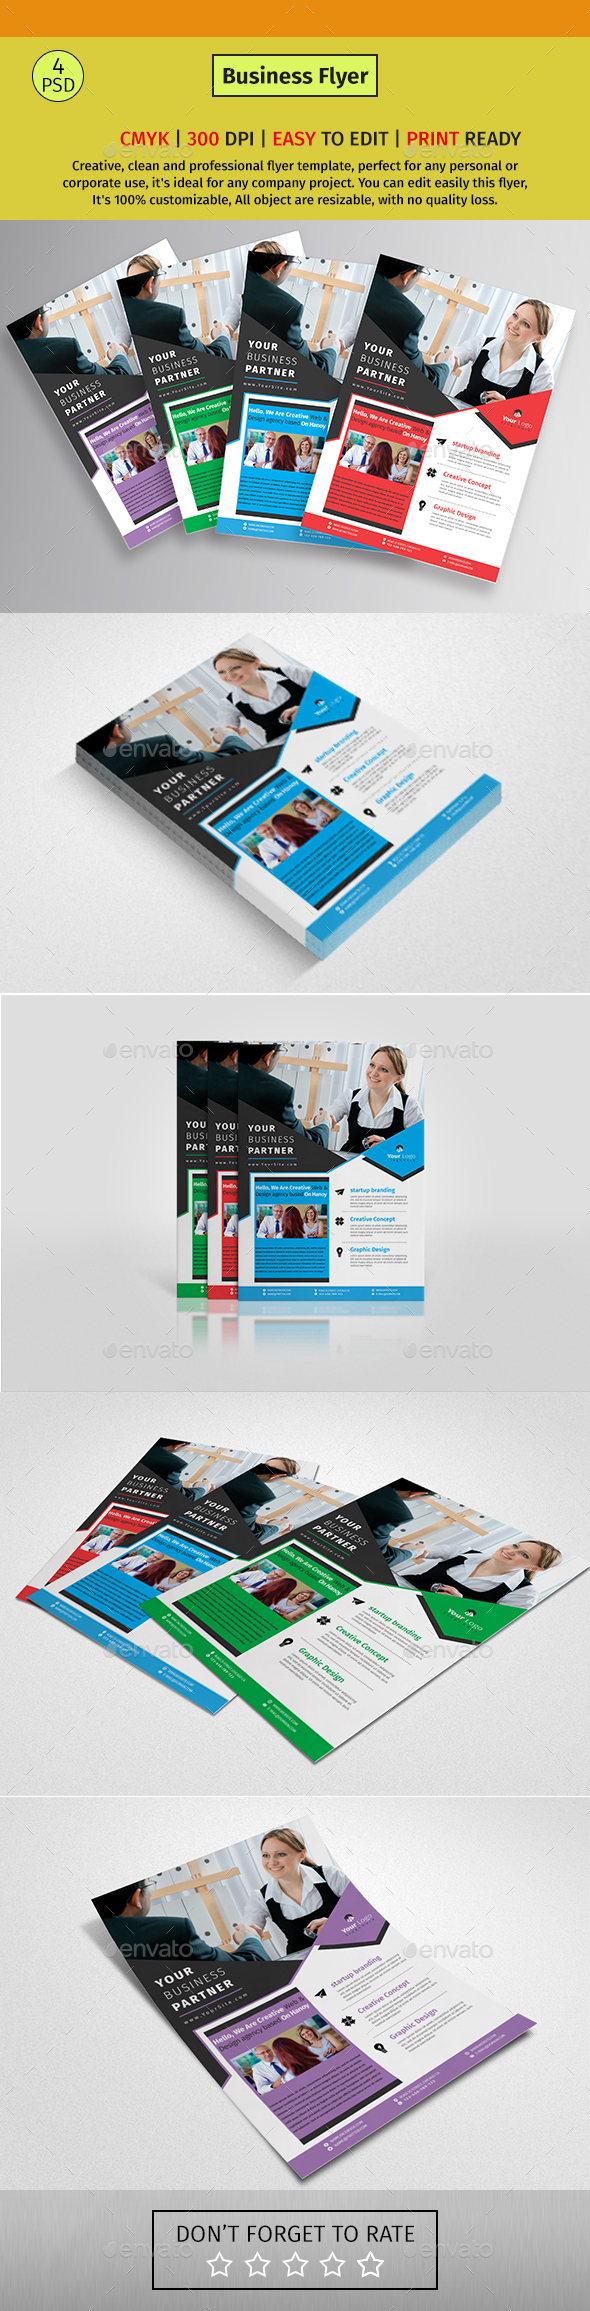 A4 Corporate Business Flyer #164 - Corporate Flyers